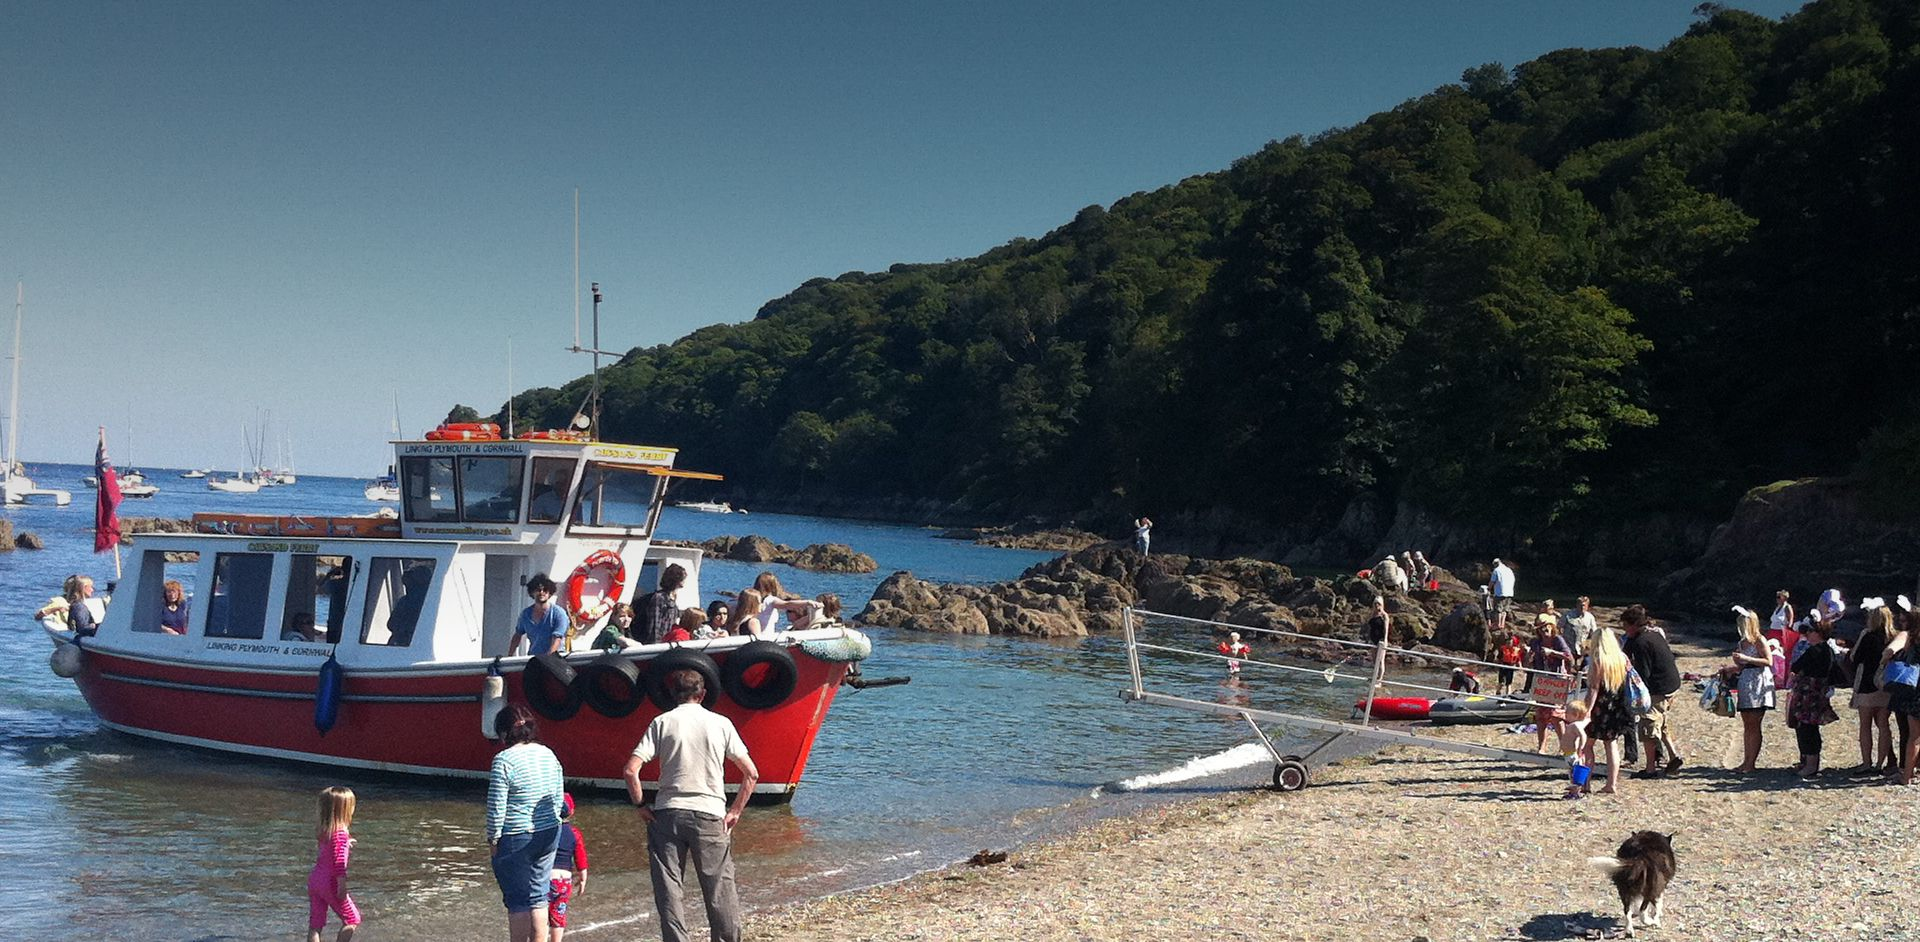 The Cawsand Ferry landing on Cawsand Beach